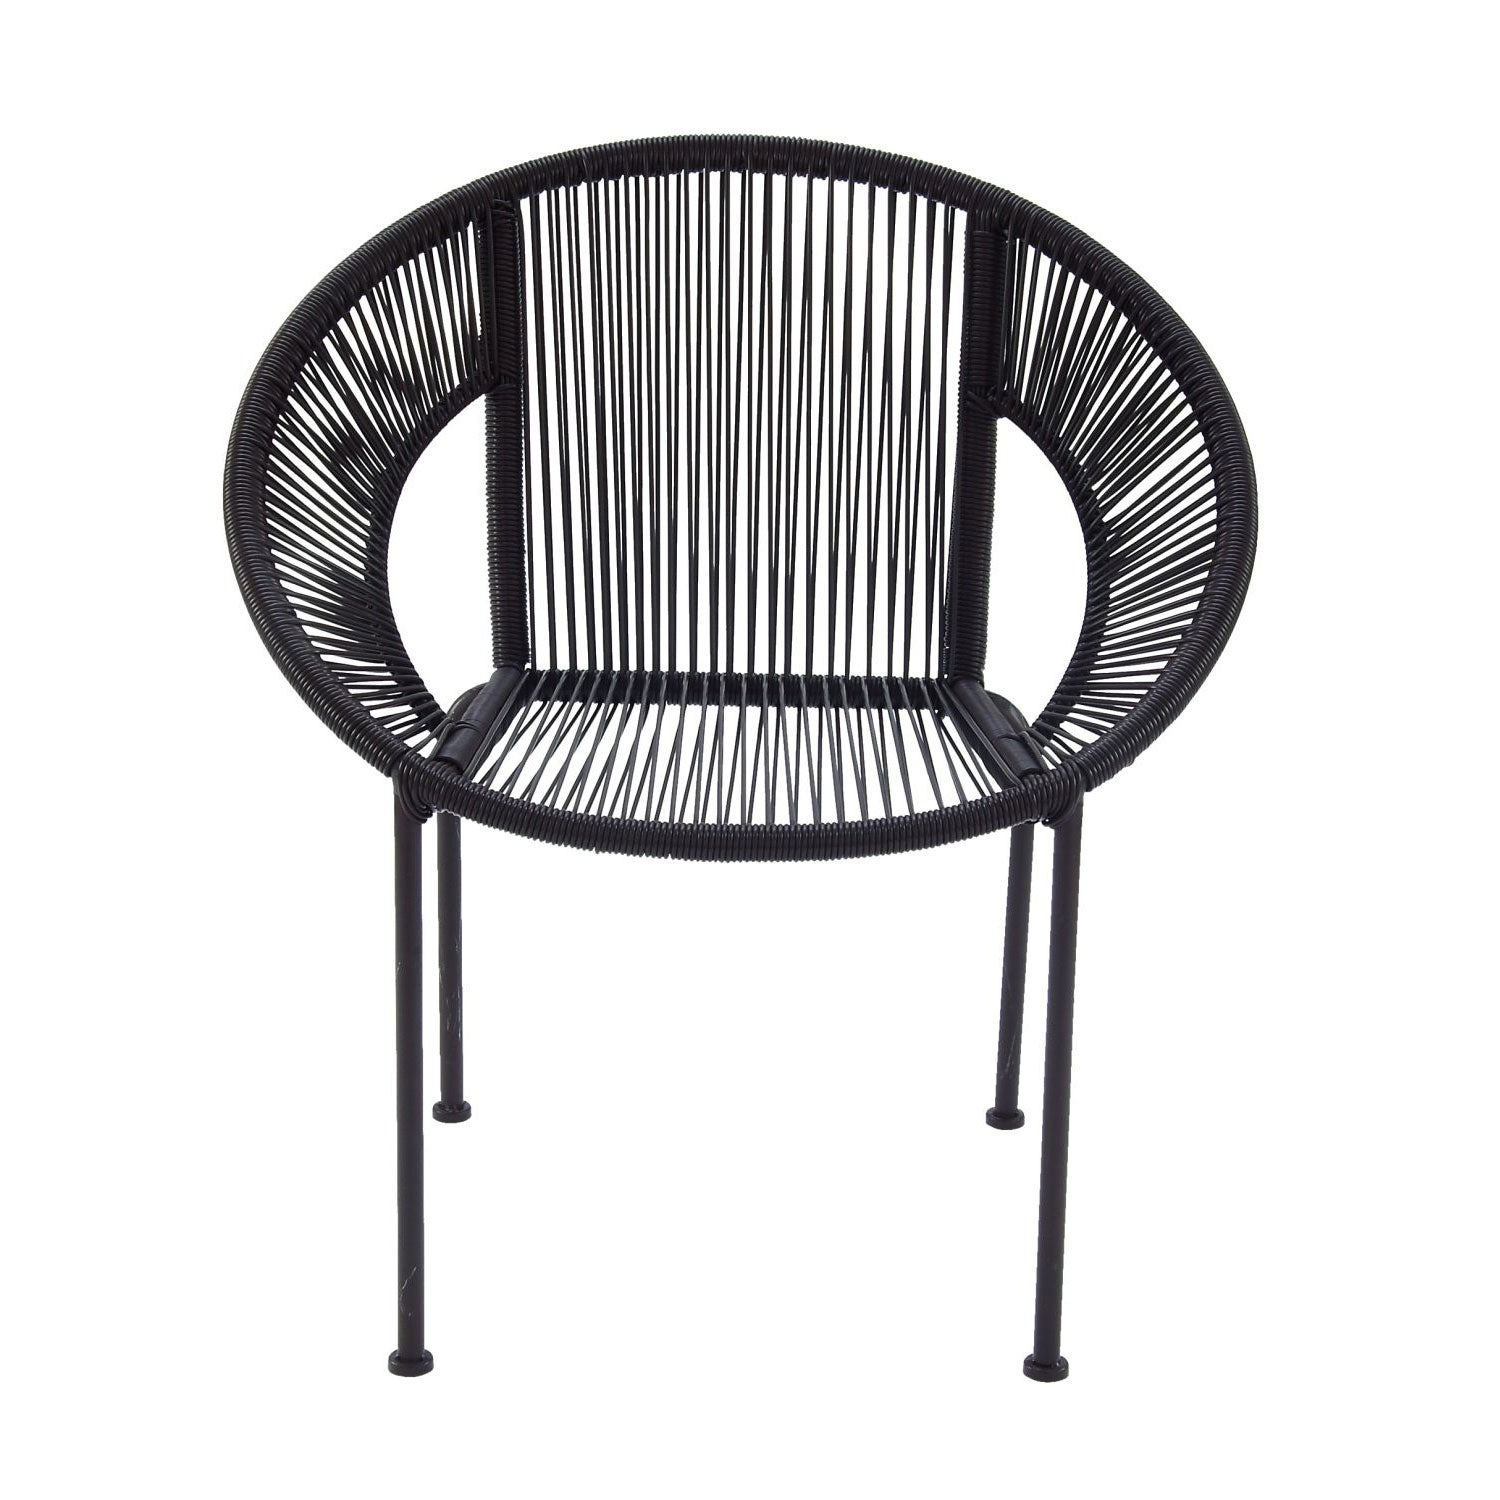 Petunia Brown Patio Bucket String Chair  sc 1 st  Weekends Only & Patio Chairs | Patio Benches | Patio Furniture | Weekends Only Furniture